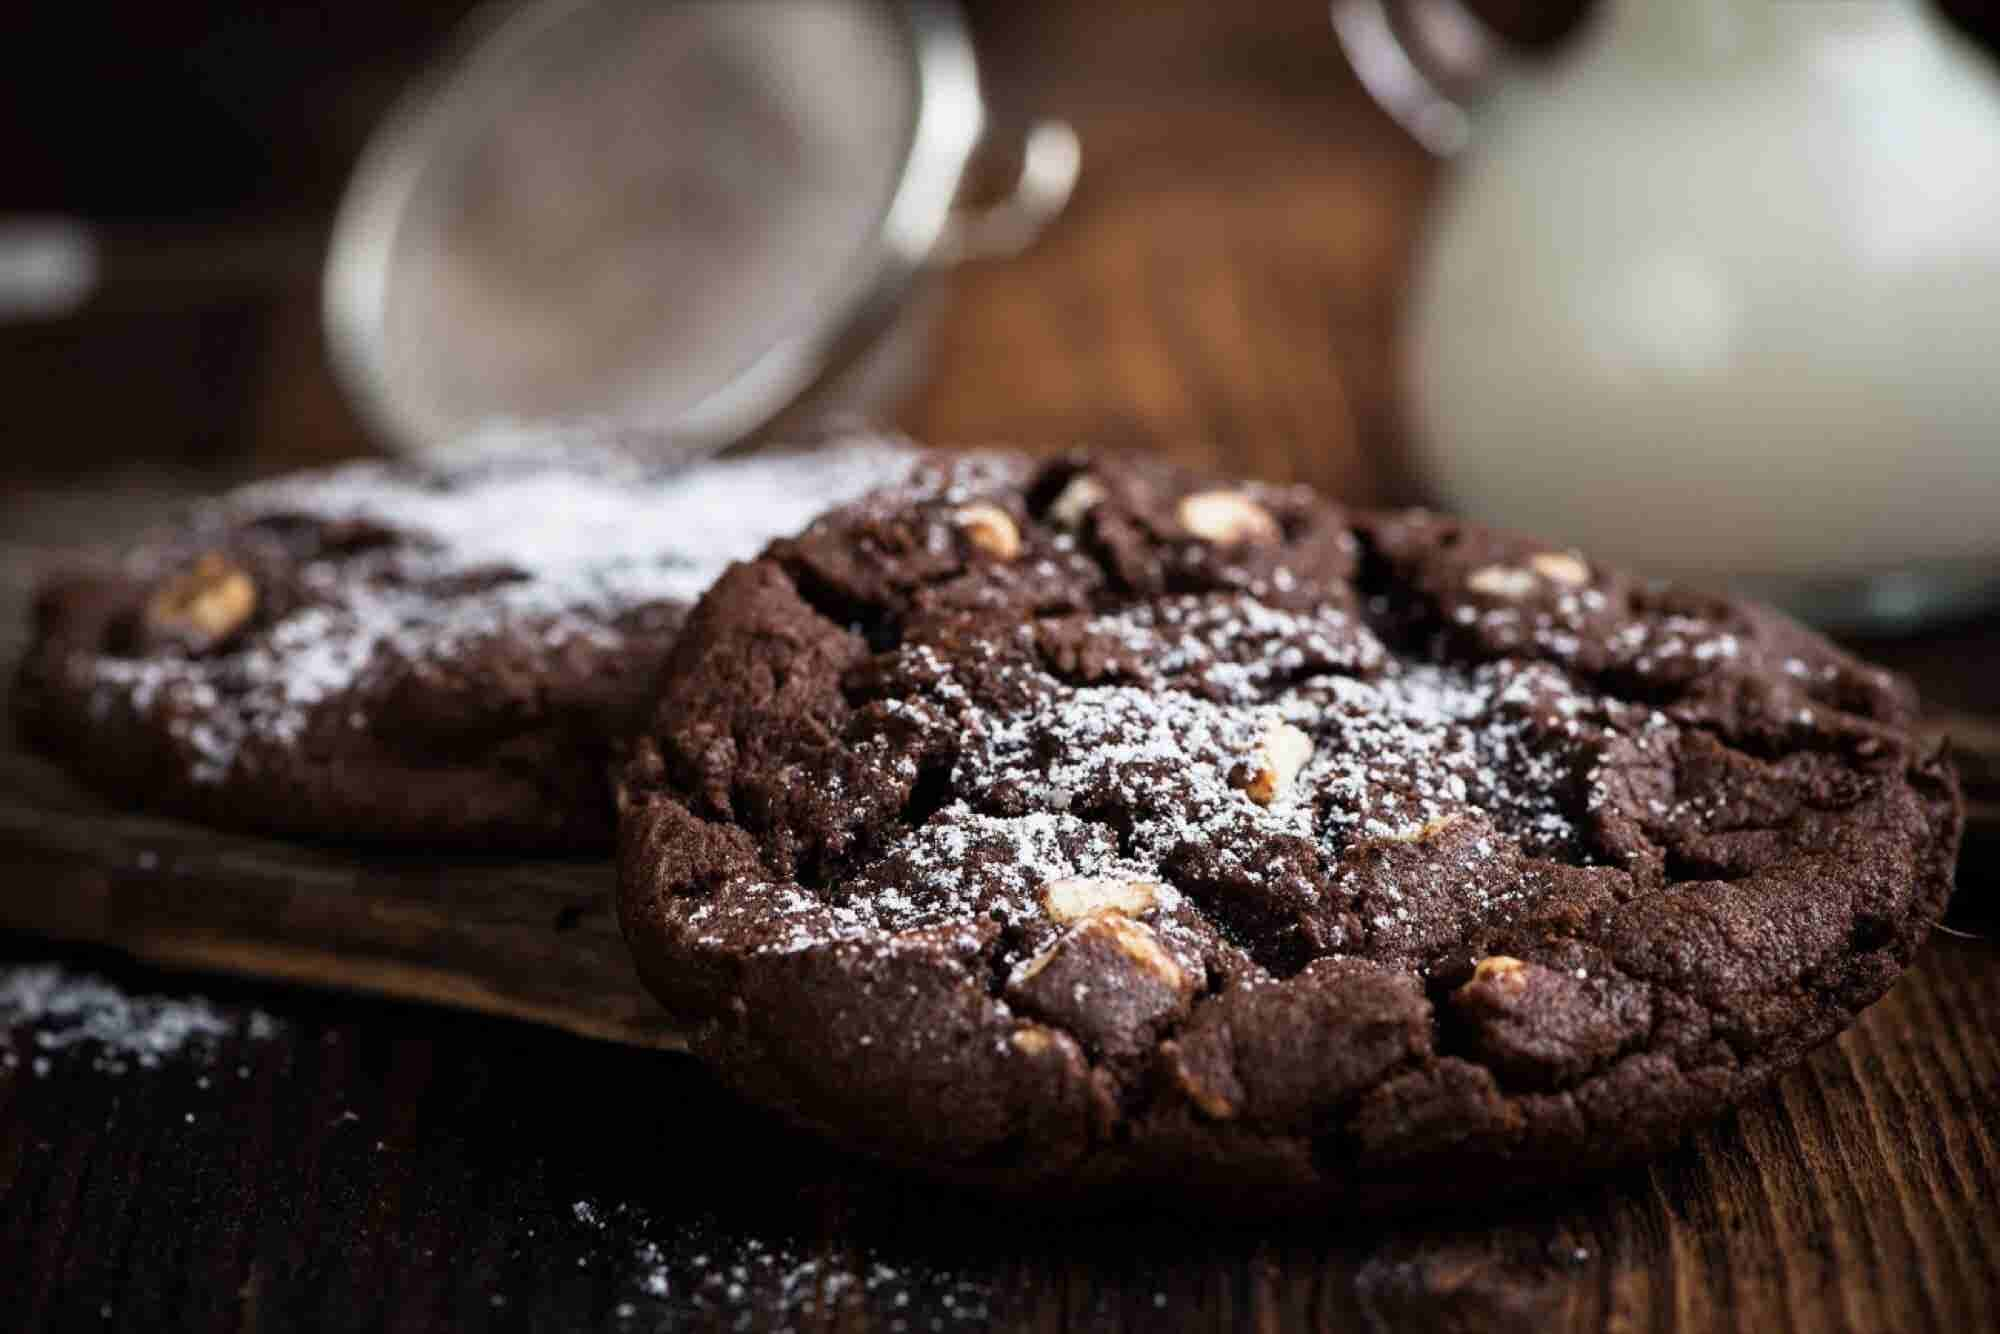 Want to Open a Bakery? Keep These Expert Tips in Mind.